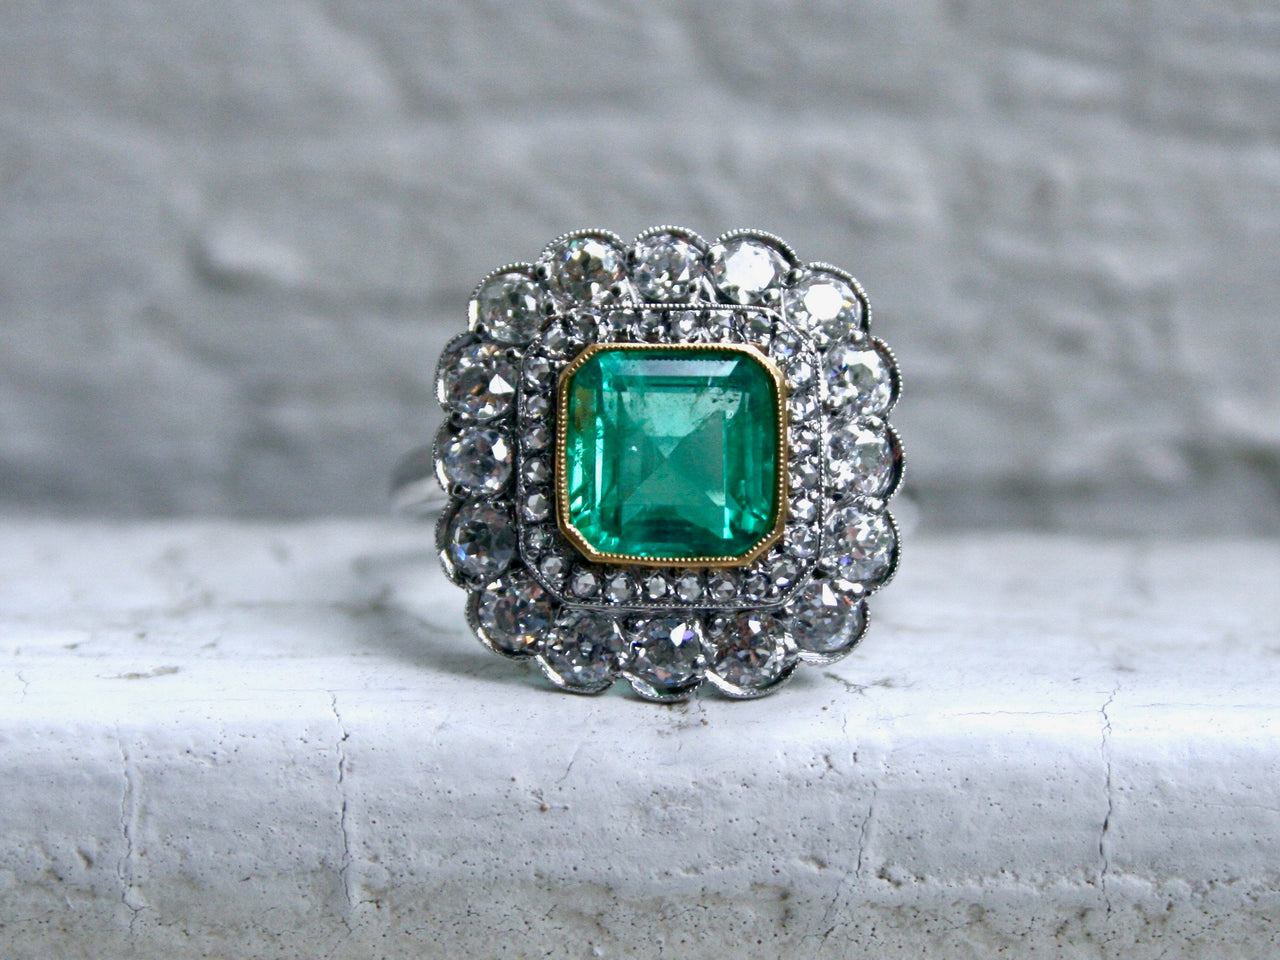 Antique Platinum Diamond Double Halo and Emerald Engagement Ring - 4.16ct.